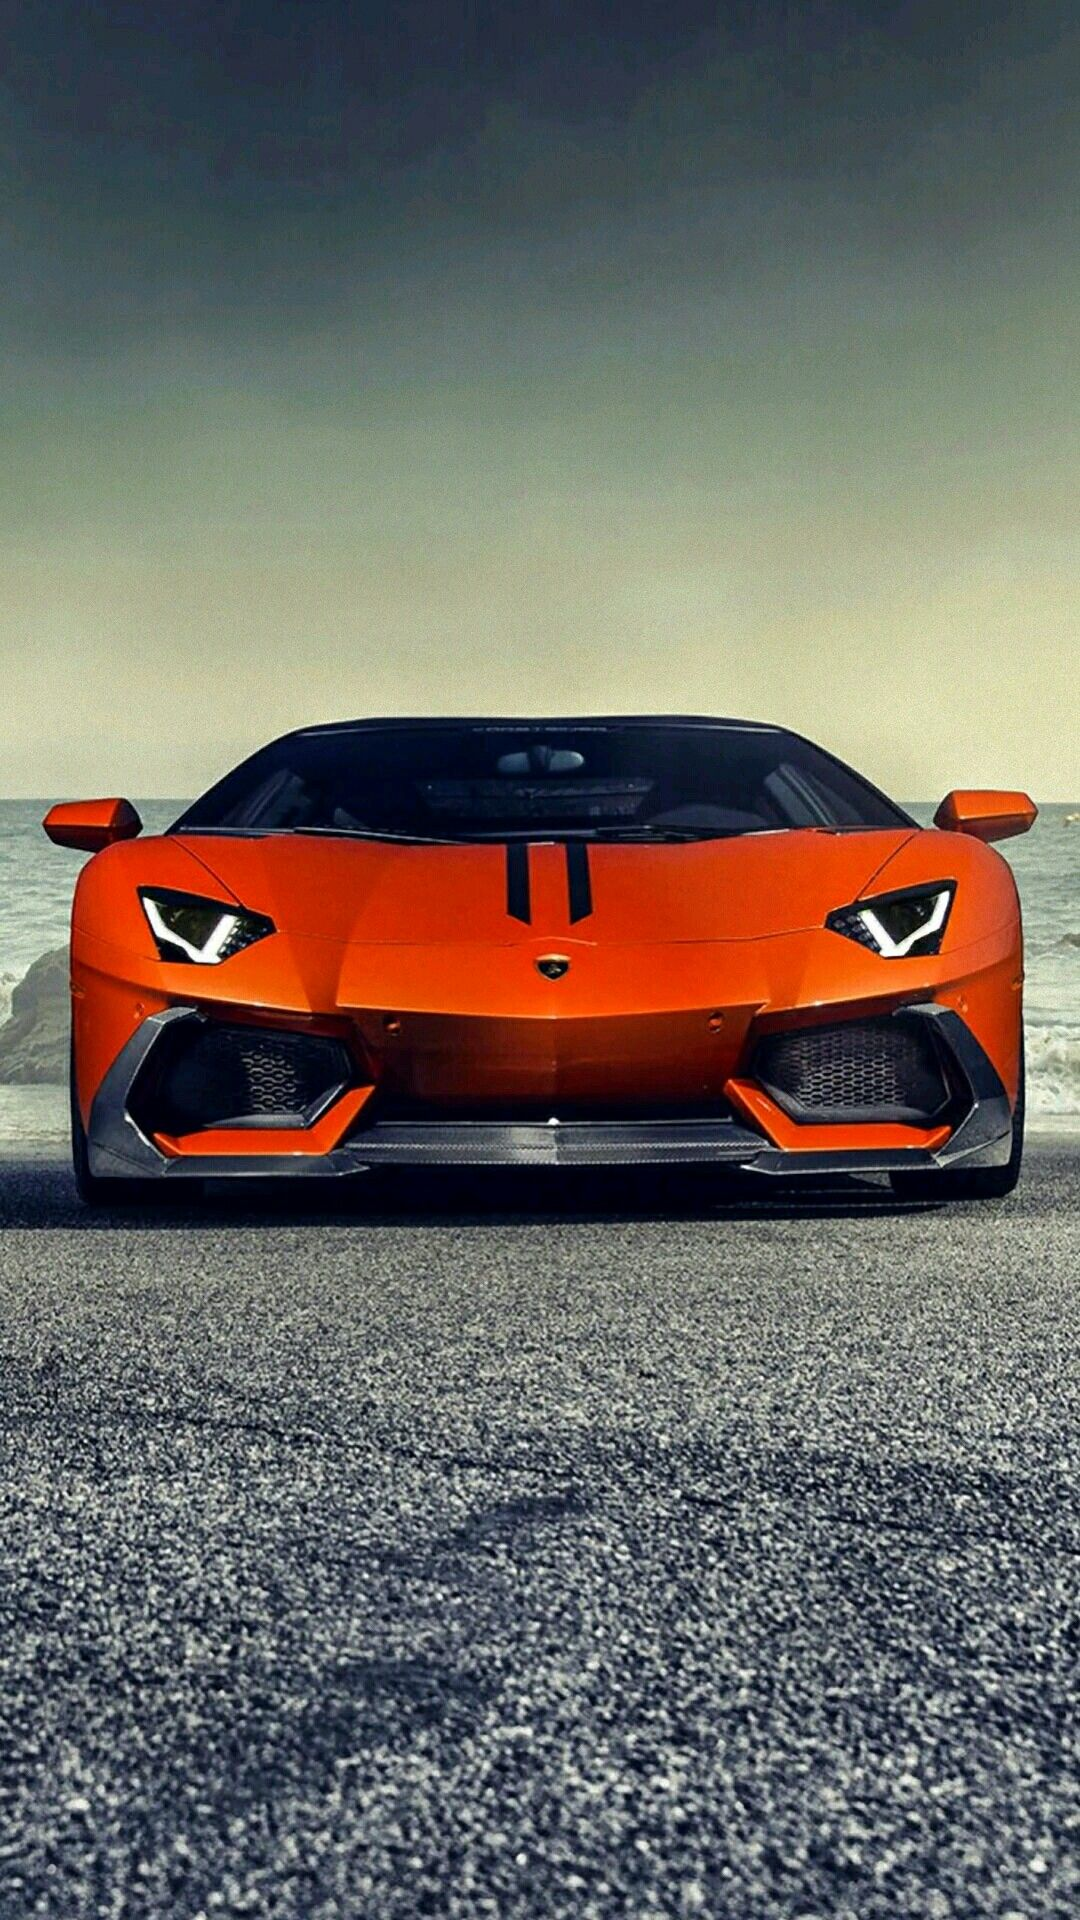 Now that's fierce. SuperCar Speed Power Performance